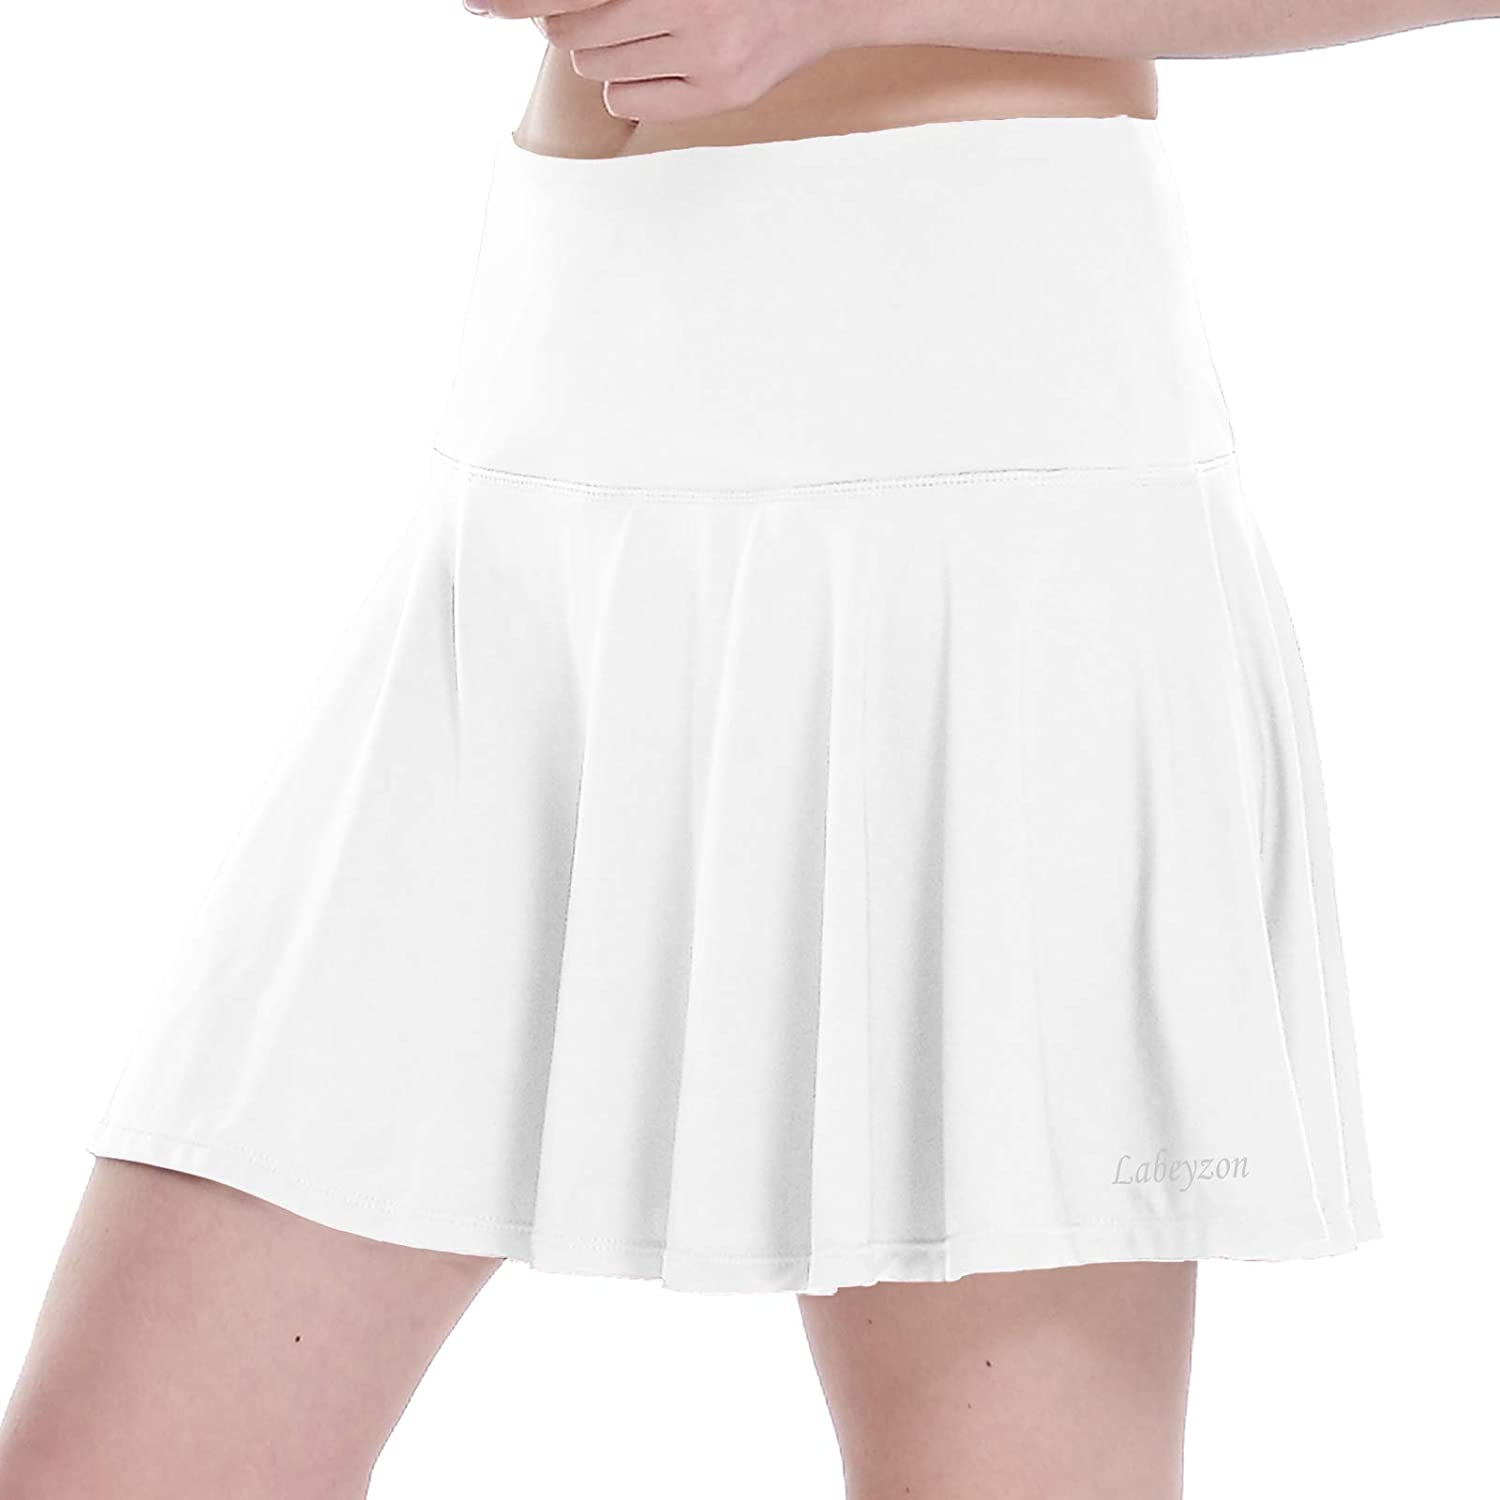 LABEYZON Women's Athletic Tennis Skirt Workout Active Golf Sport Running Pleated Skorts with Shorts Ball Pockets